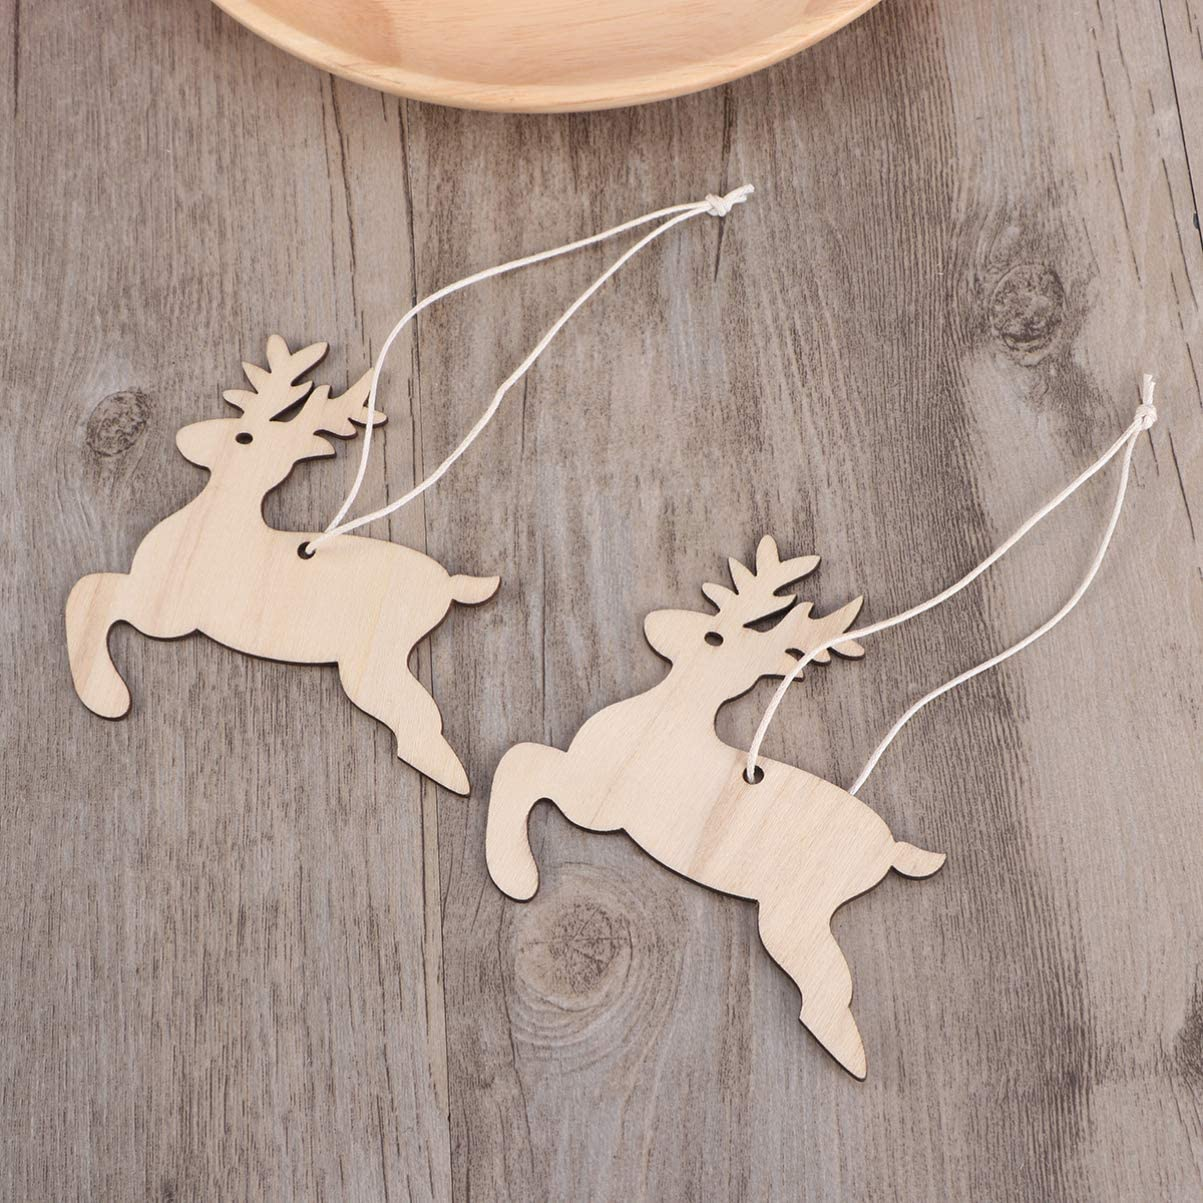 Amosfun 10pcs Hanging Wooden Christmas Tree Decorations Ornaments Wood Tags Unfinished Wood Cartoon Reindeer Cutouts Shapes Wooden Slices for DIY Craft Painting